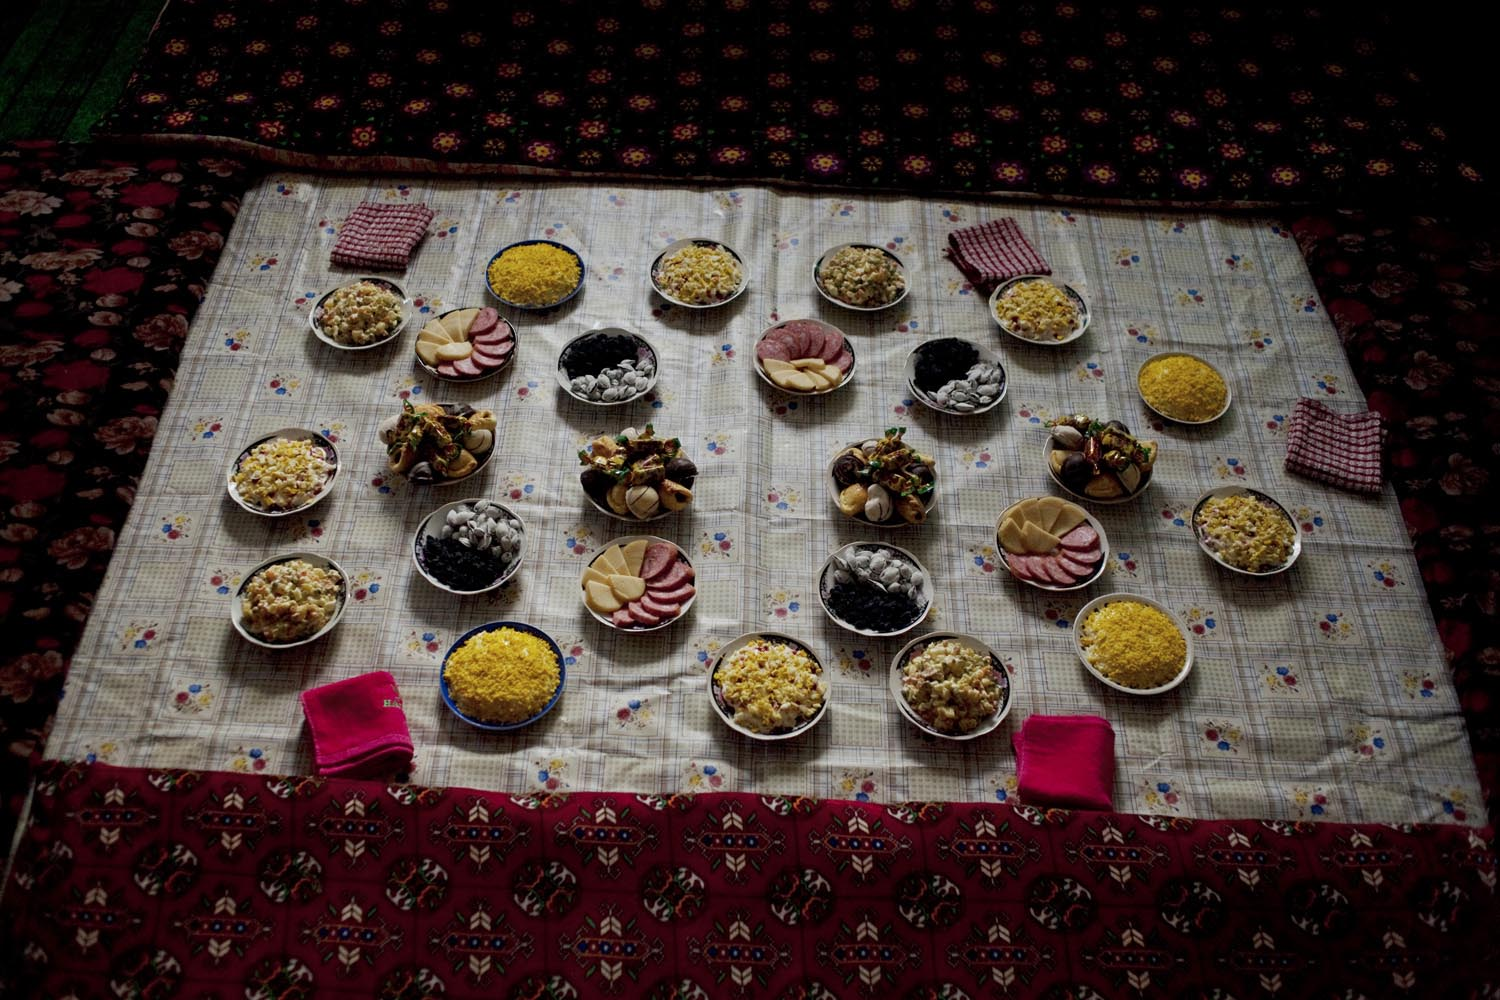 Plates of food be served at a birthday party.                               Syr Darya, Uzbekistan